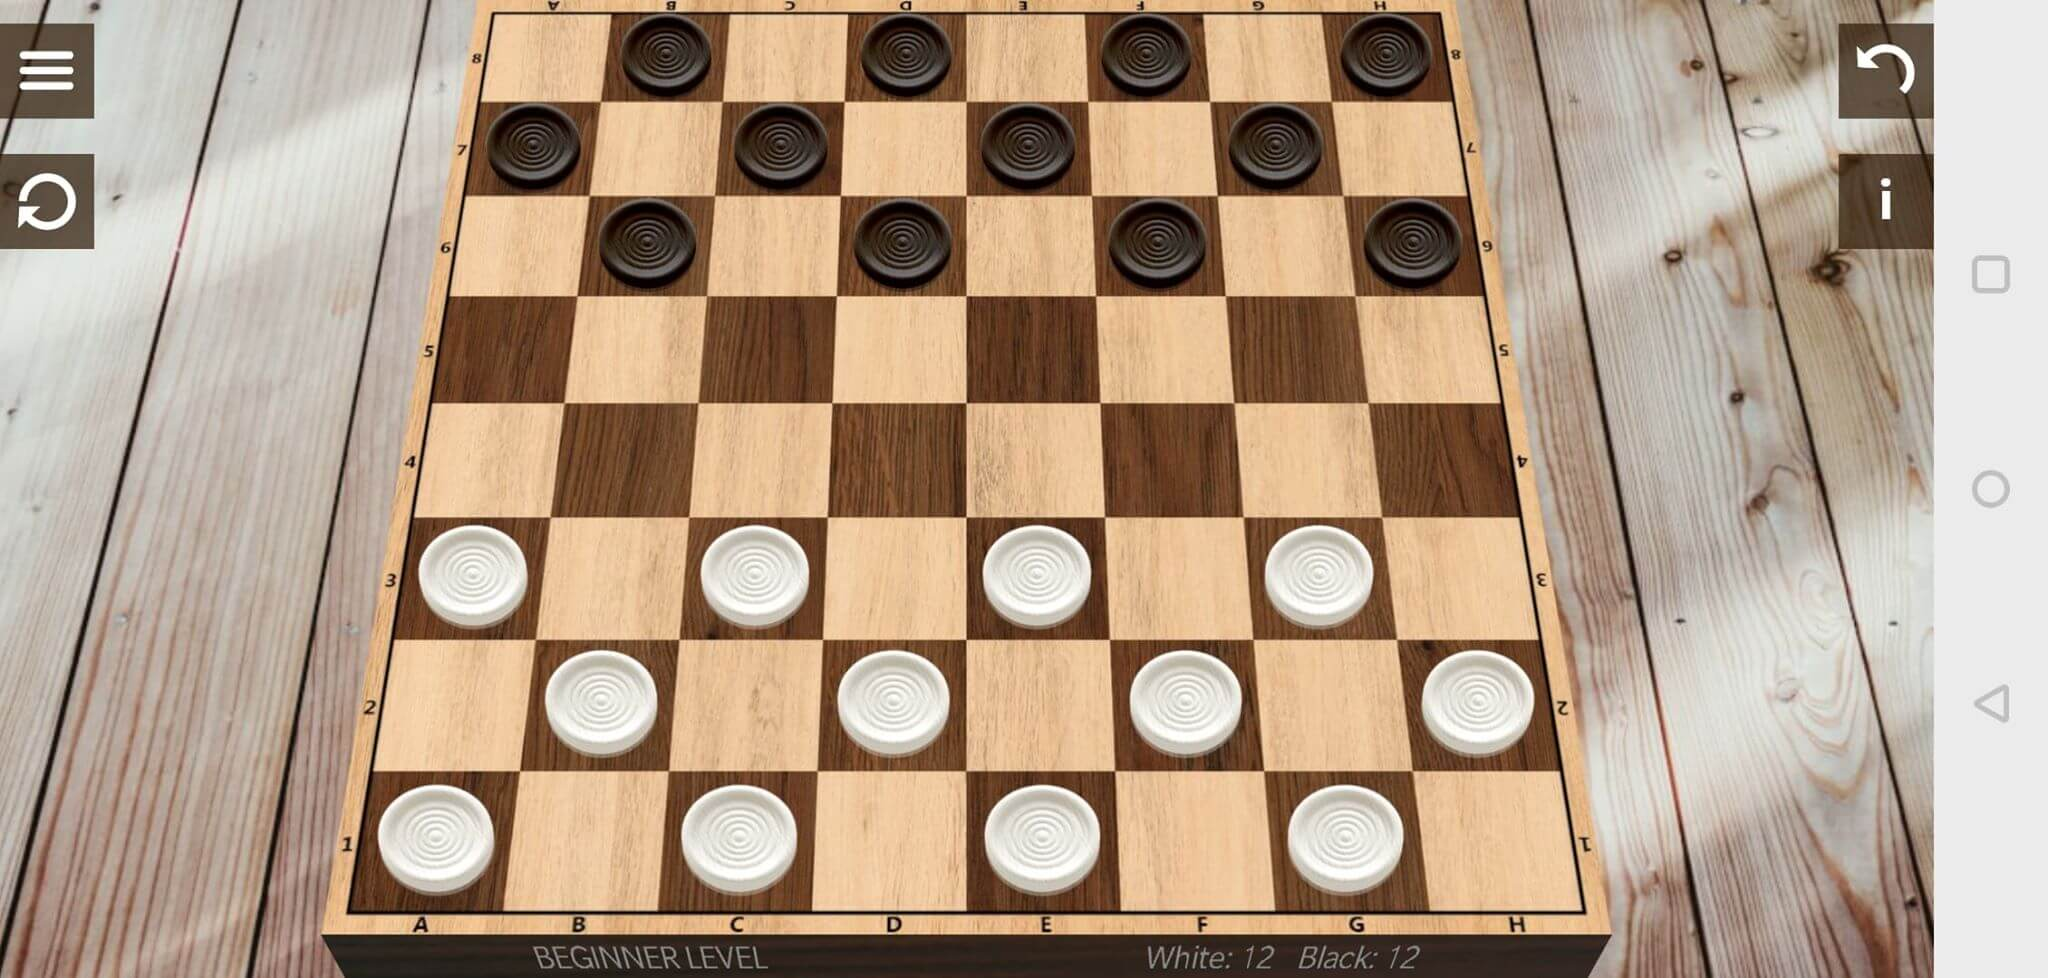 checkers pieces on board